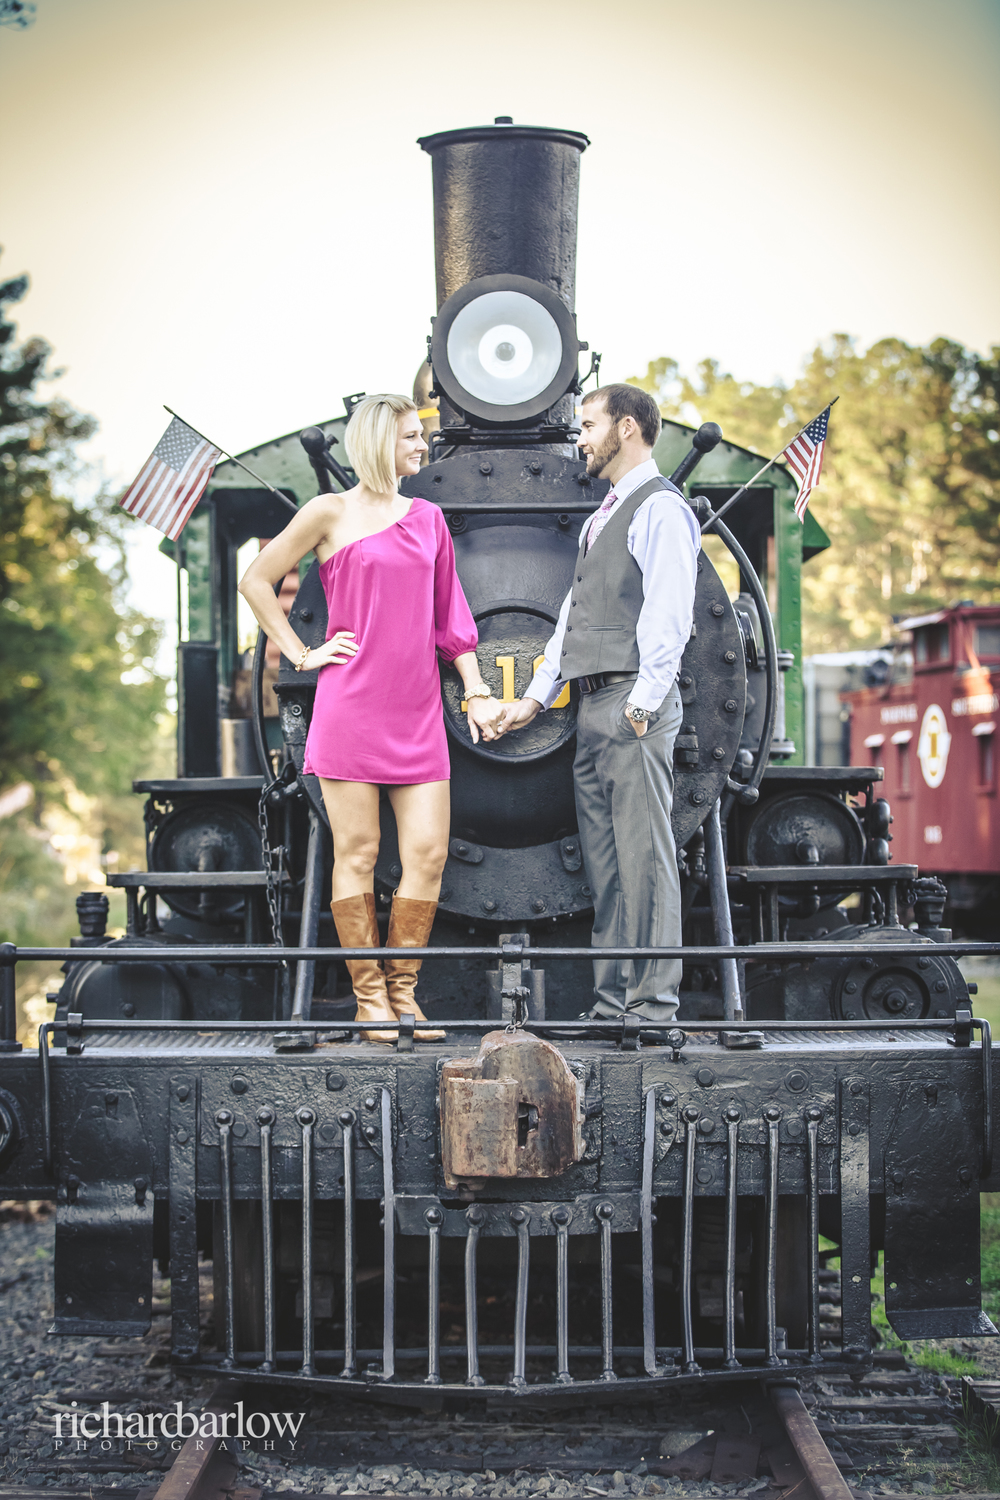 richard barlow photography - Mike and Renee Engagement Session NC-6.jpg